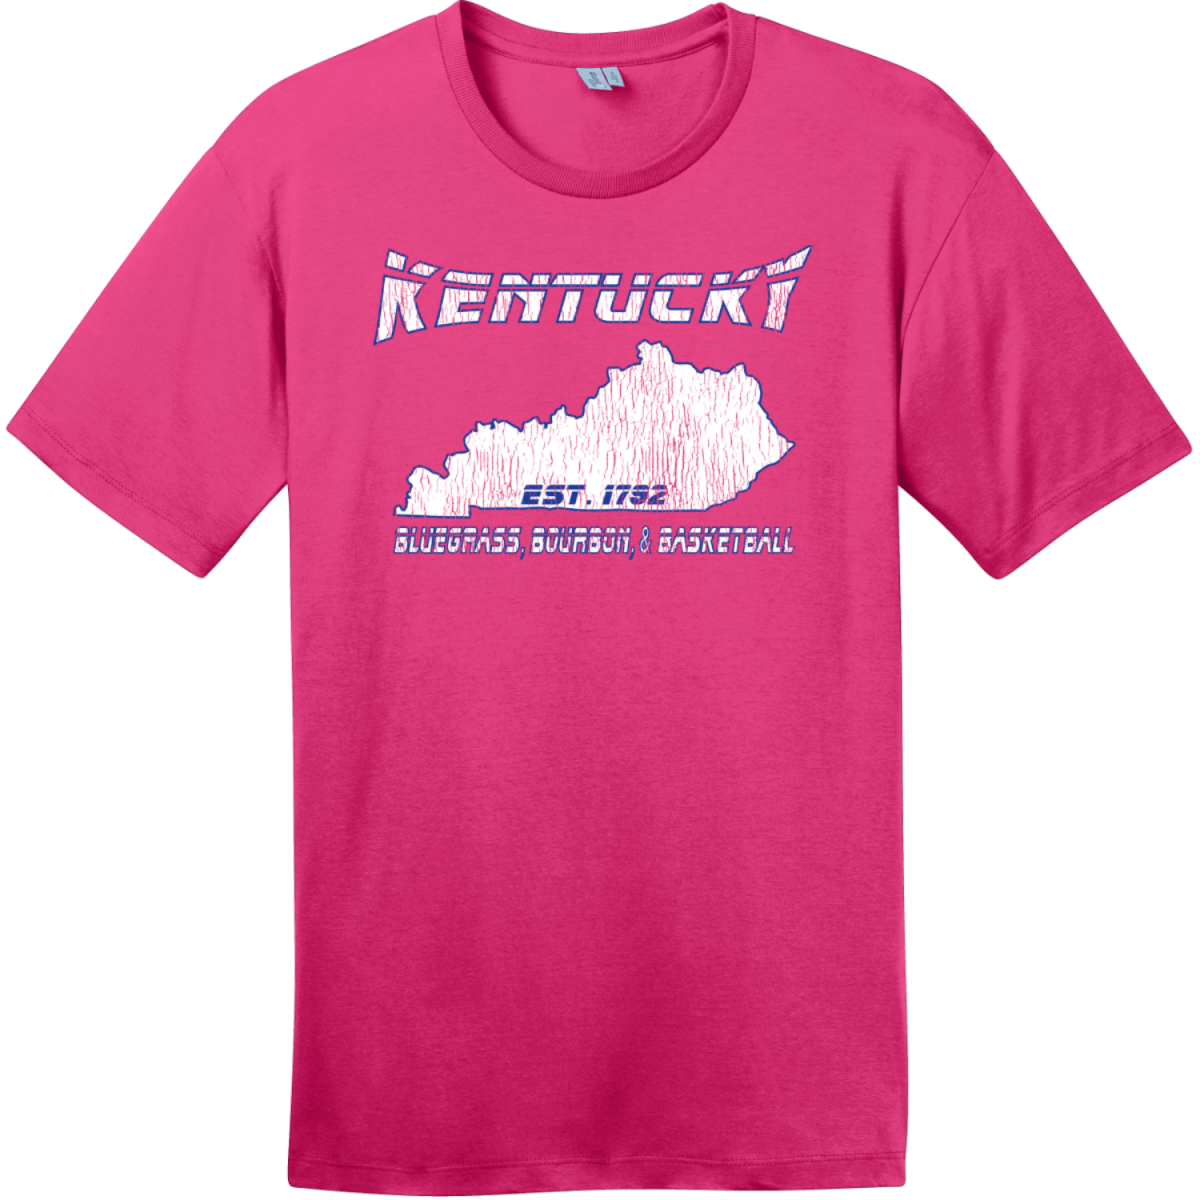 Kentucky Bluegrass Bourbon and Basketball Tee Dark Fuchsia District Perfect Weight Tee DT104